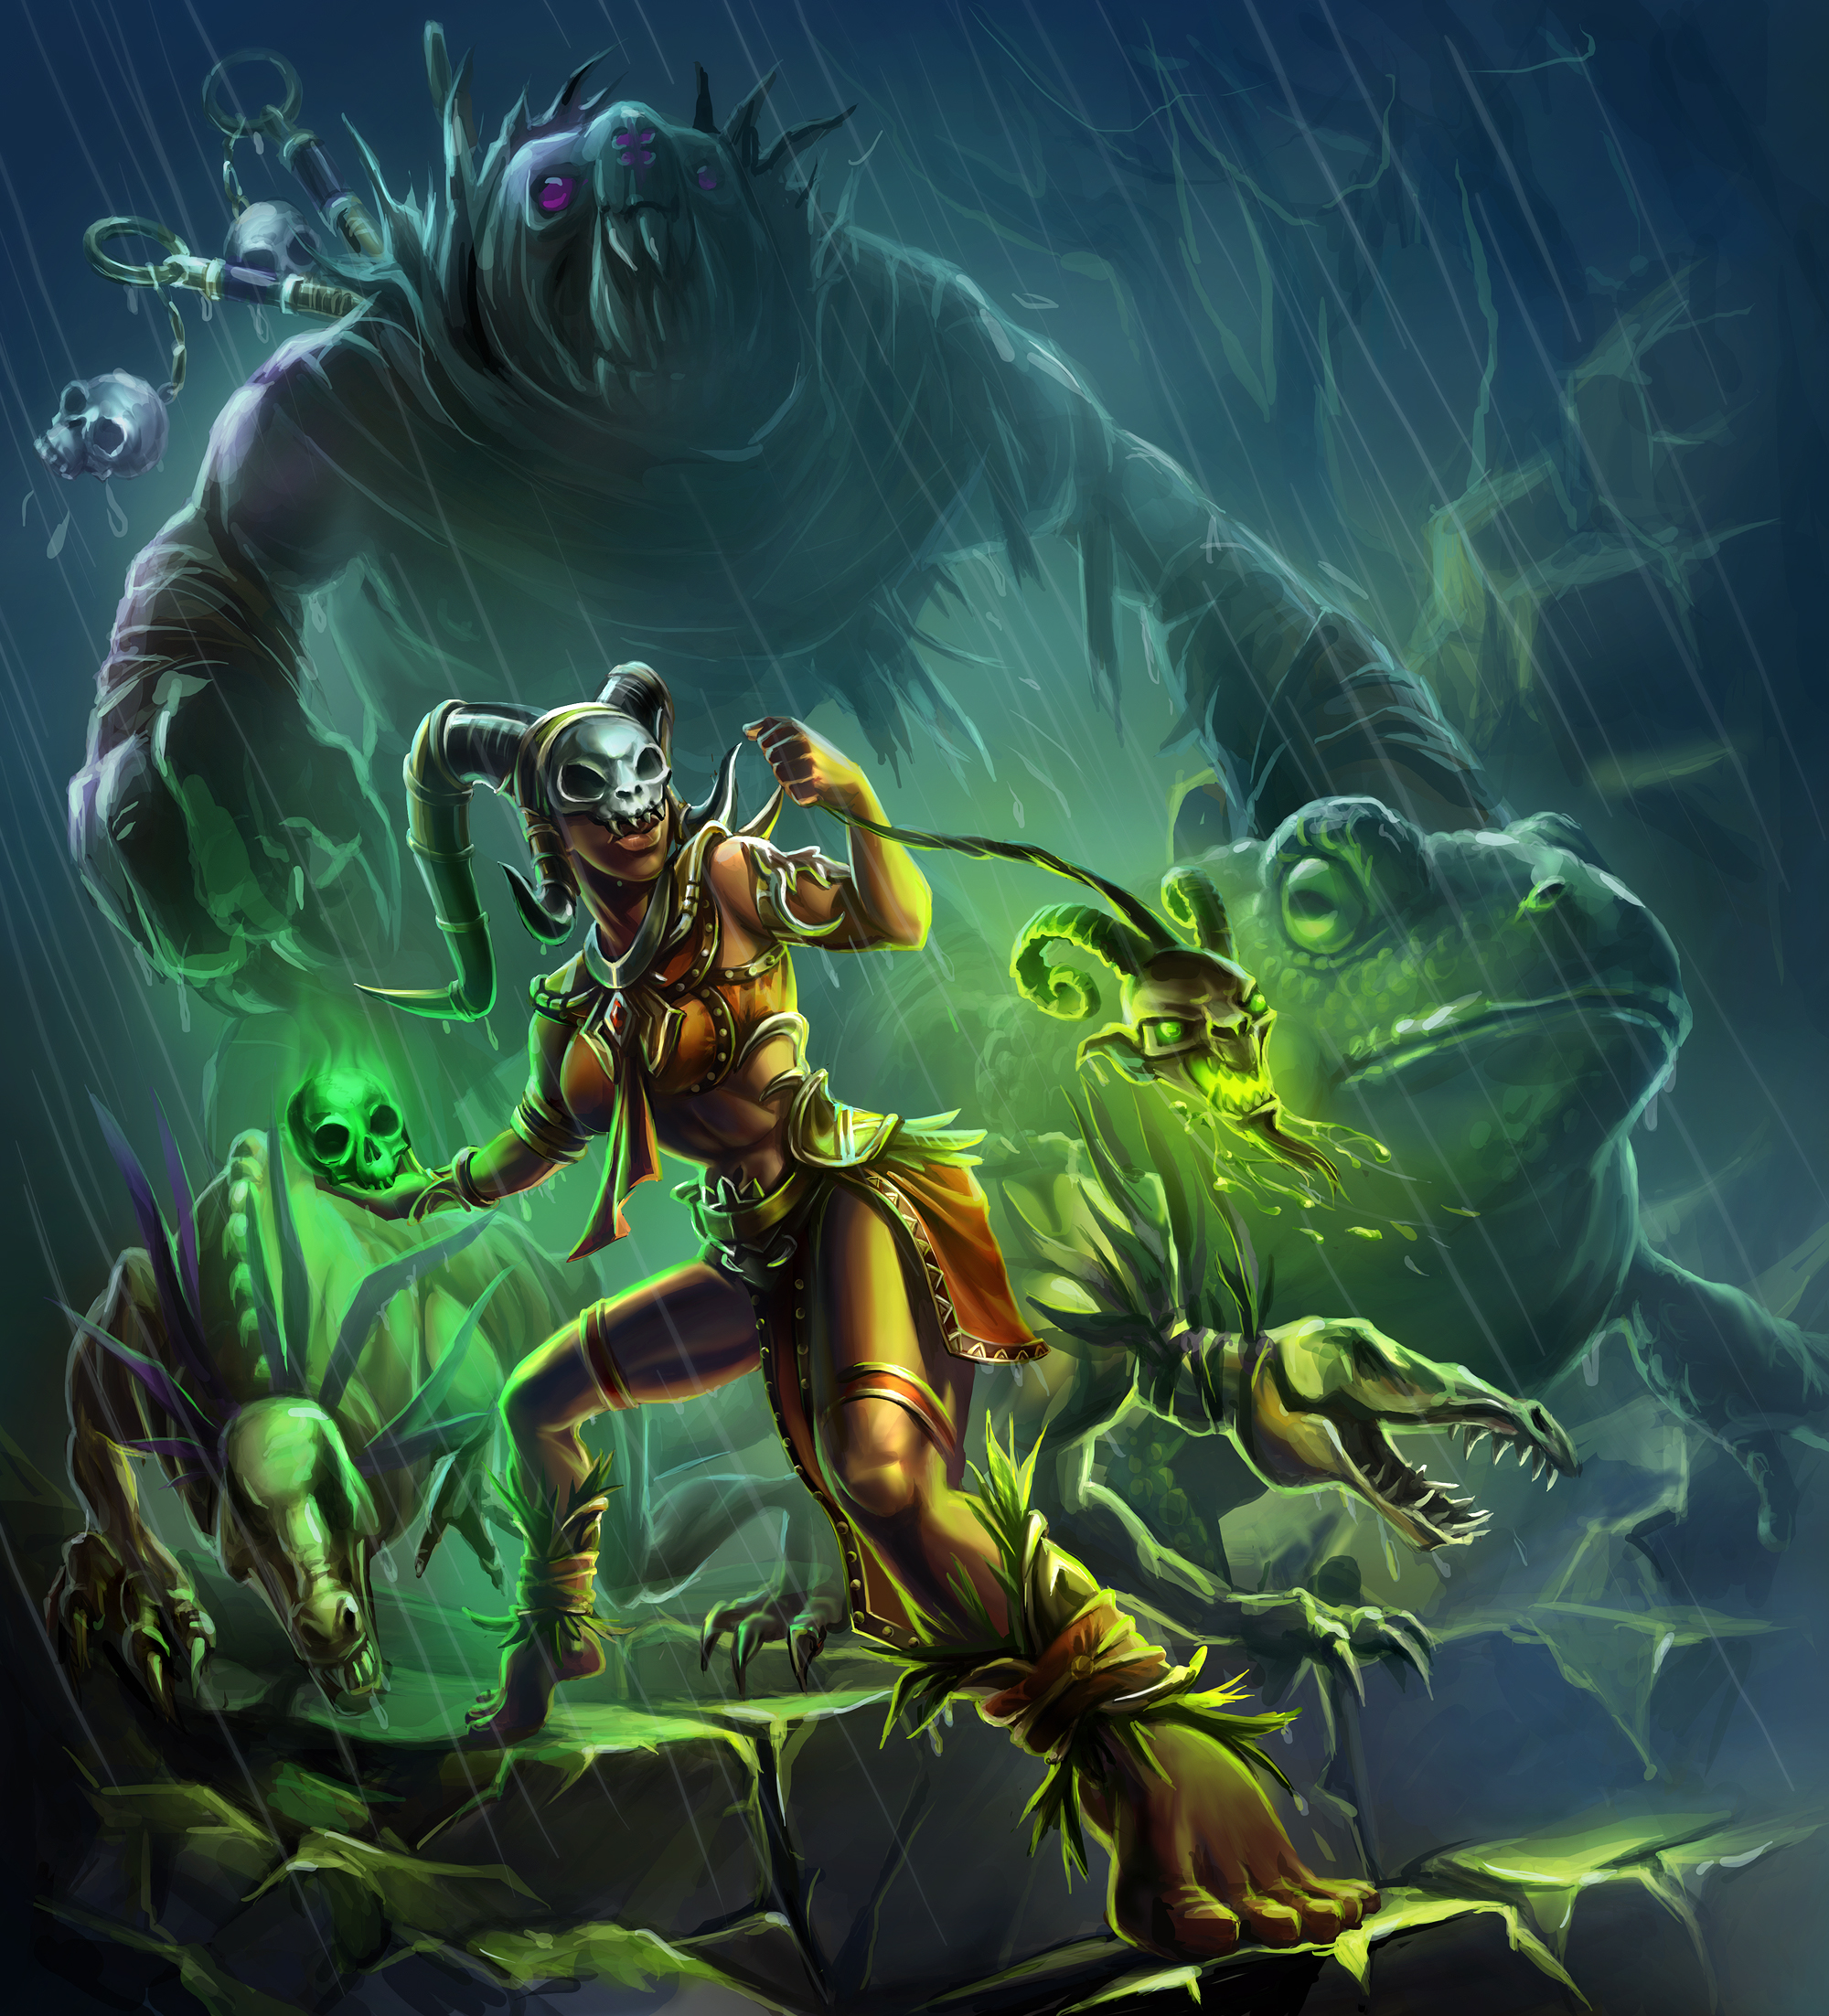 Diablo 3 Wallpaper 1920x1080: Diablo 3 Witch Doctor Wallpaper